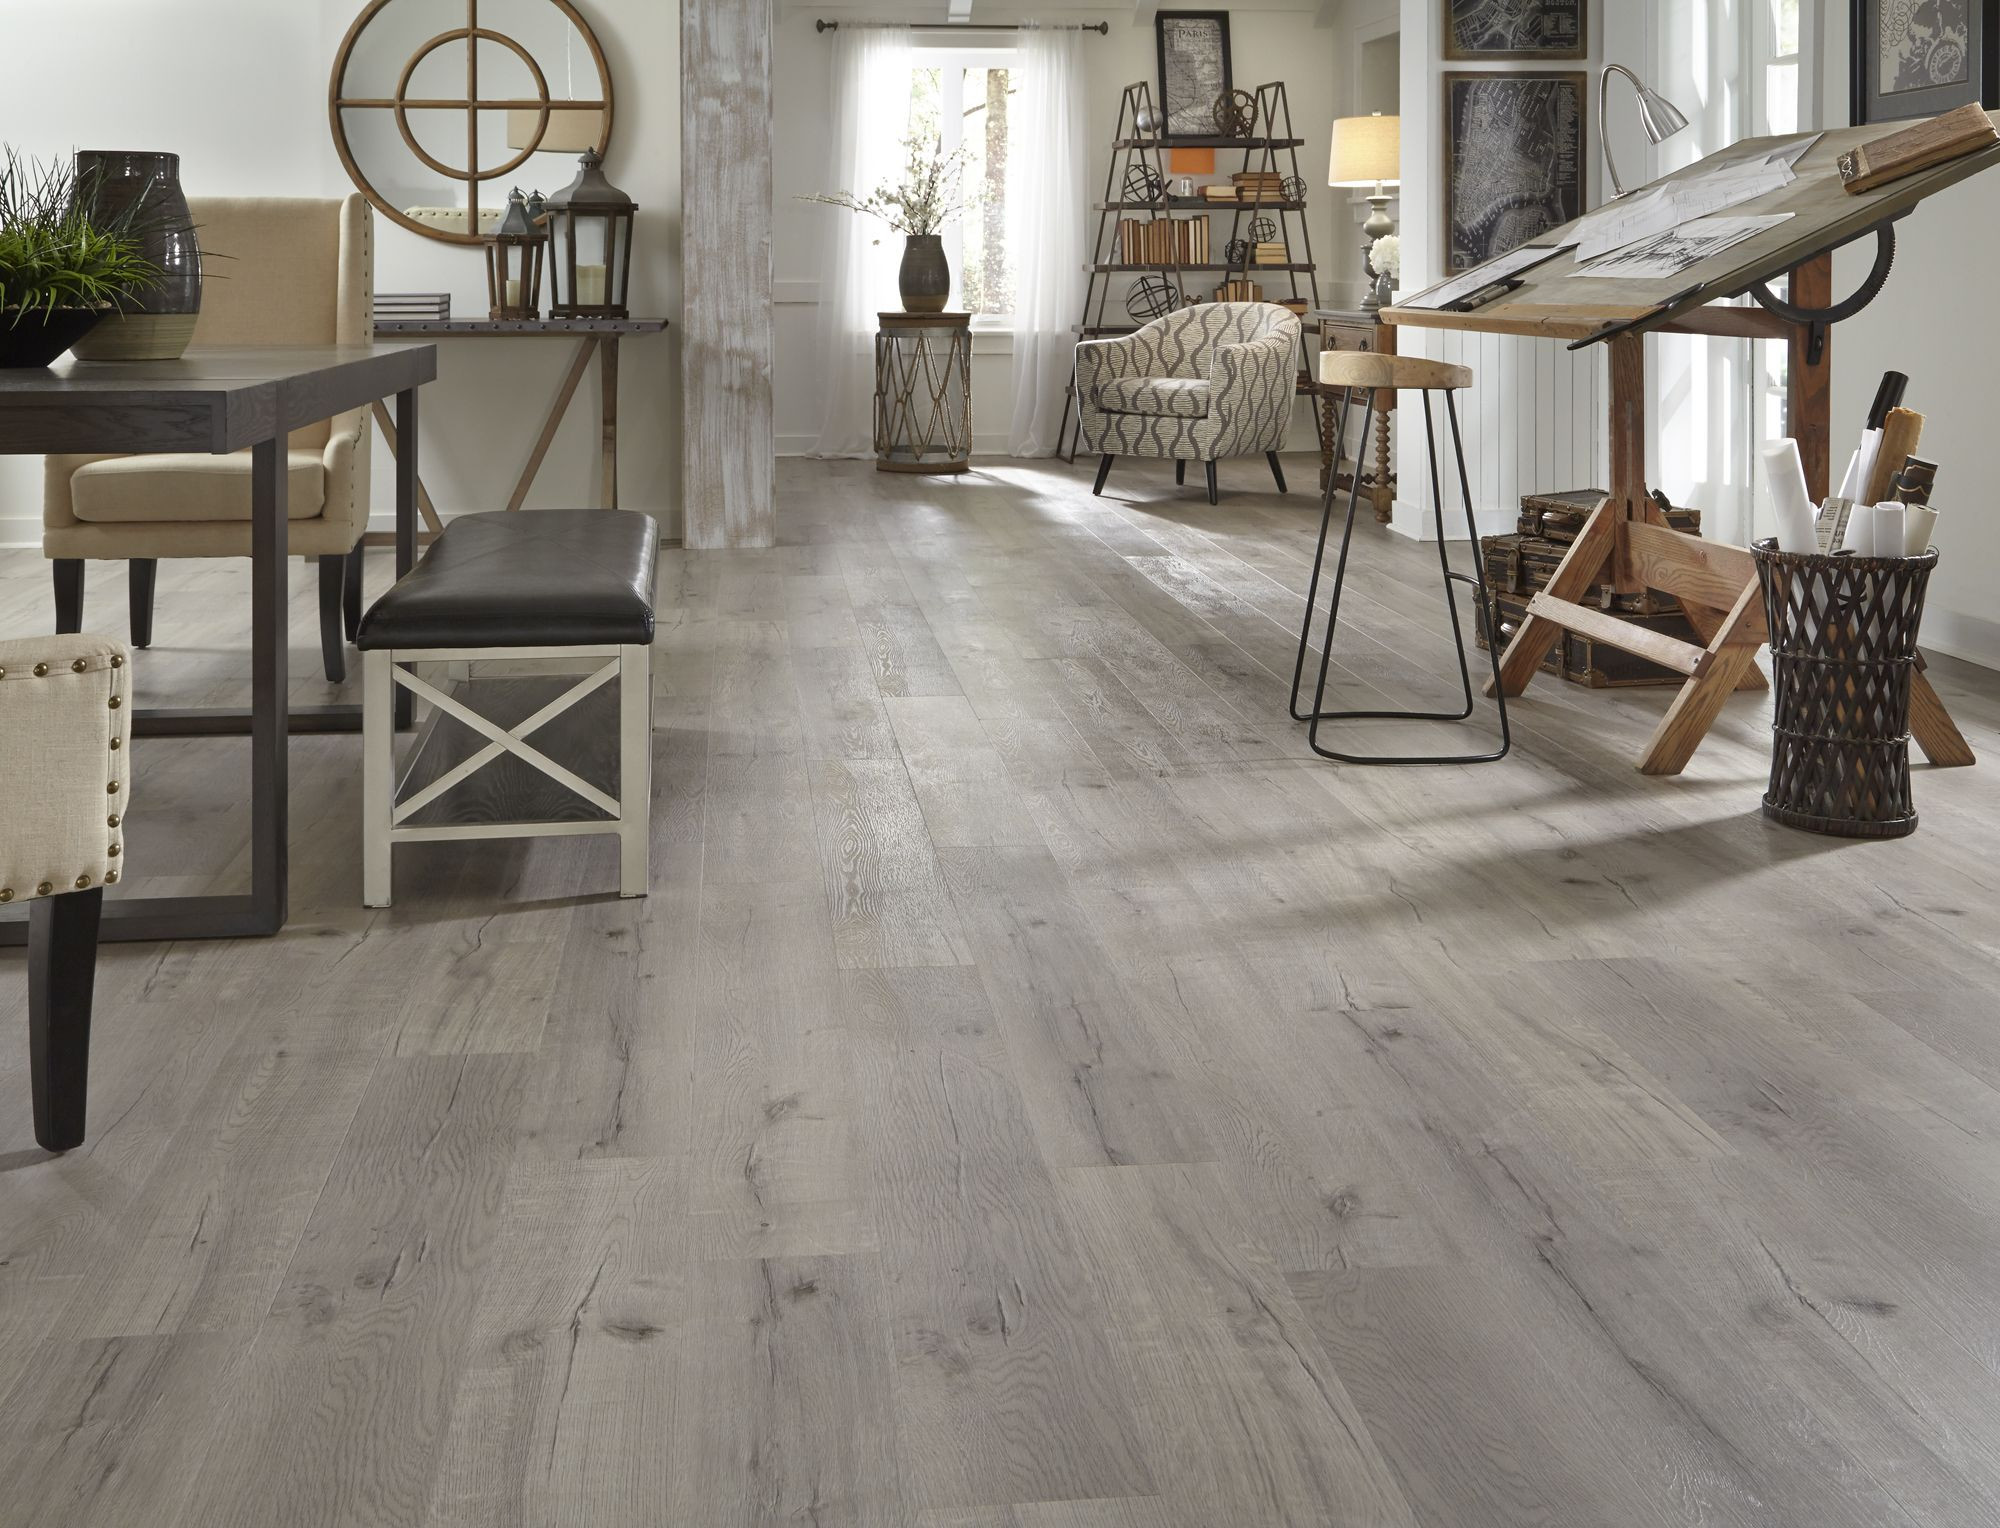 hardwood floor refinishing st louis mo of this fall flooring season see 100 new flooring styles like driftwood throughout this fall flooring season see 100 new flooring styles like driftwood hickory evp its part of a new line of waterproof flooring thats ideal for any space